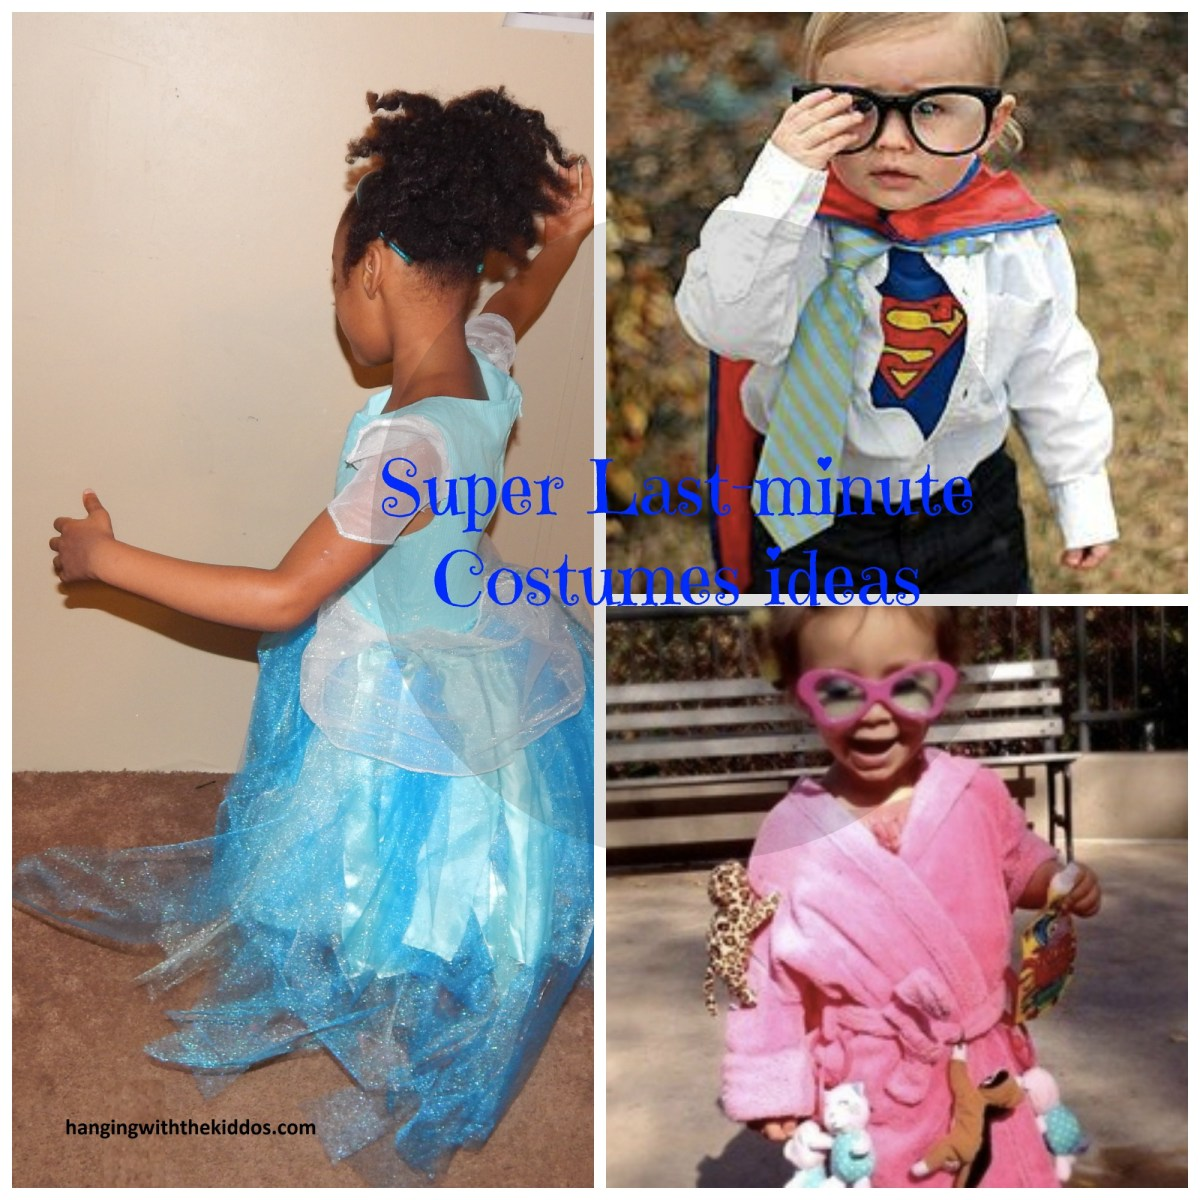 Super Last-Minute Costumes DIY